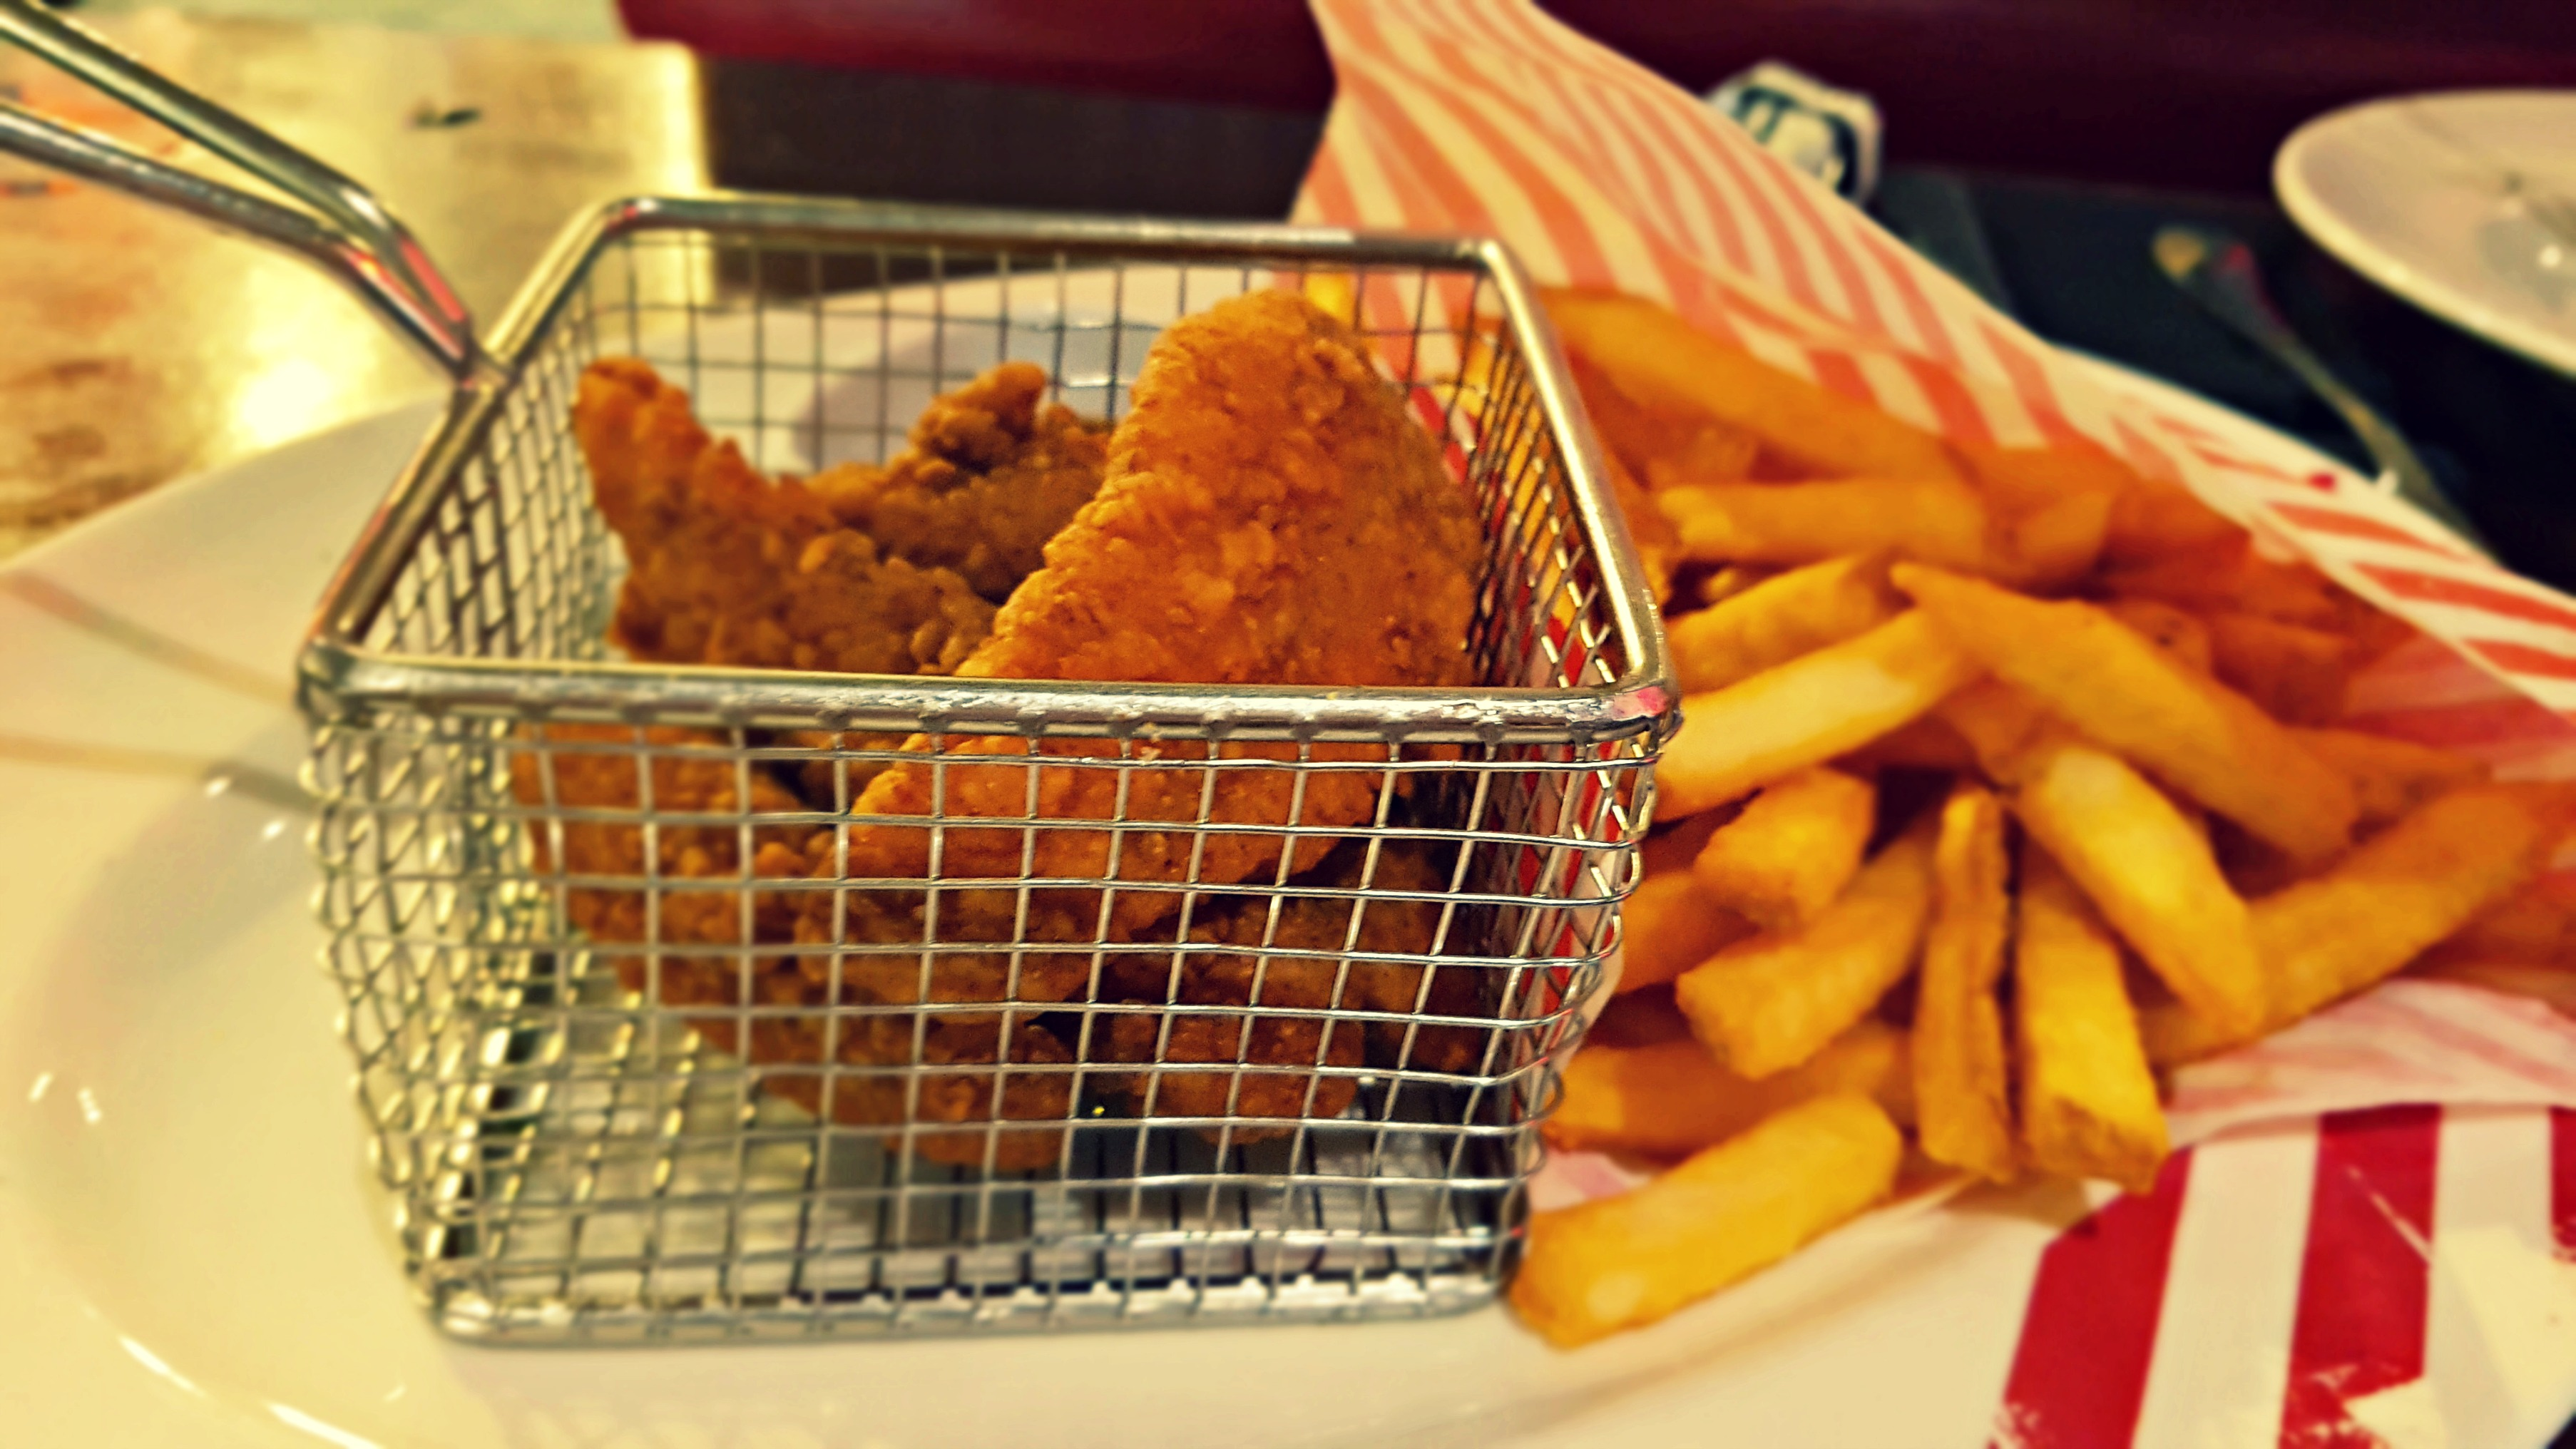 chicken fingers in a little metal serving basket with fries from tgi fridays